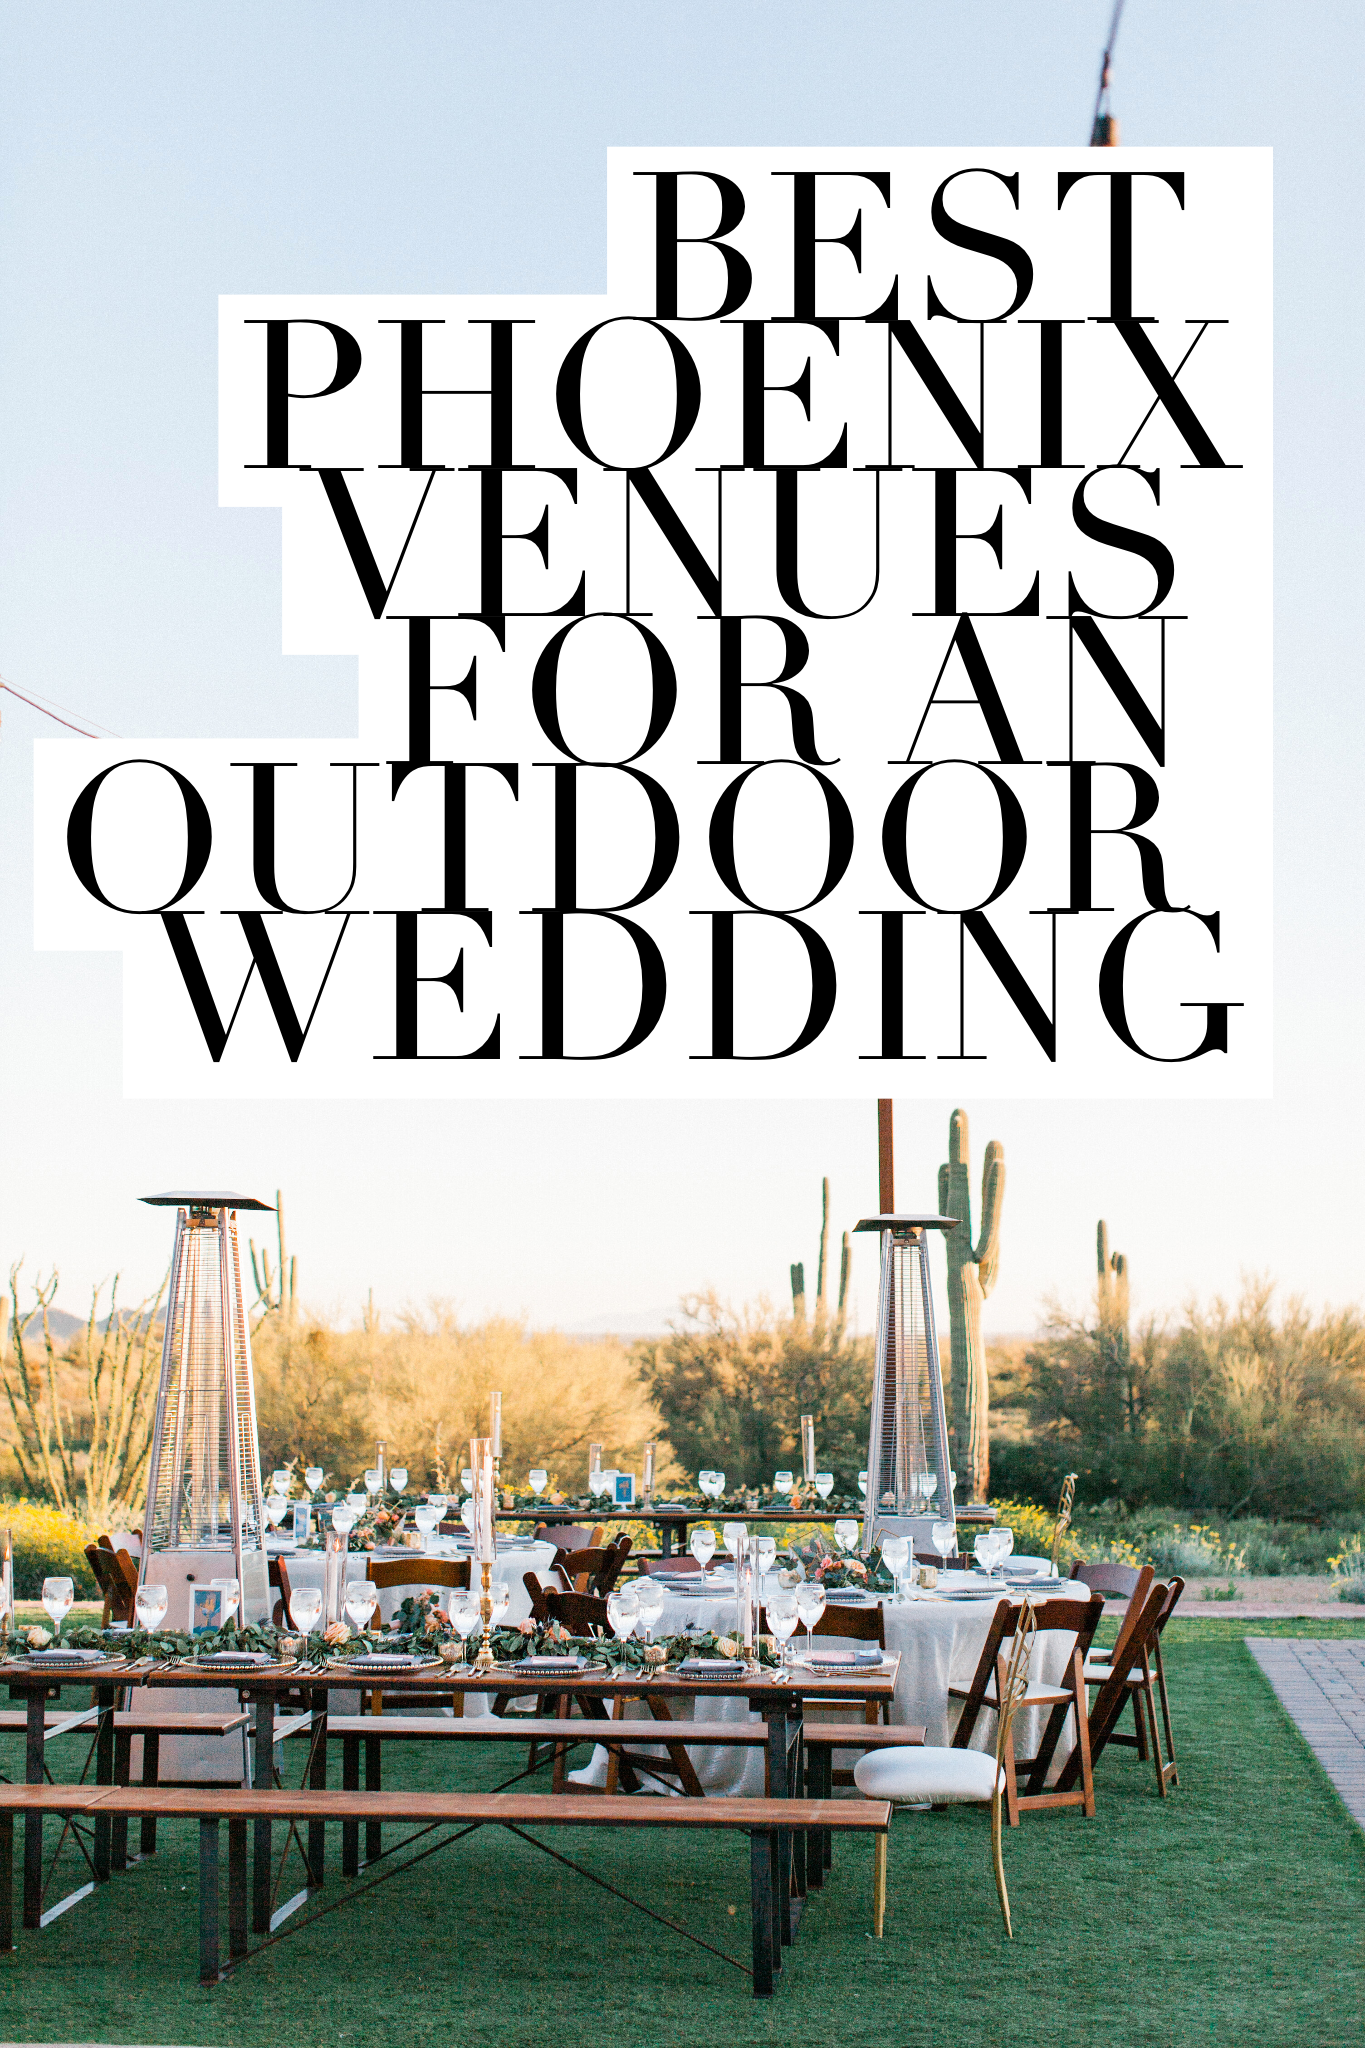 The Best Phoenix Wedding Venues for a Outdoor